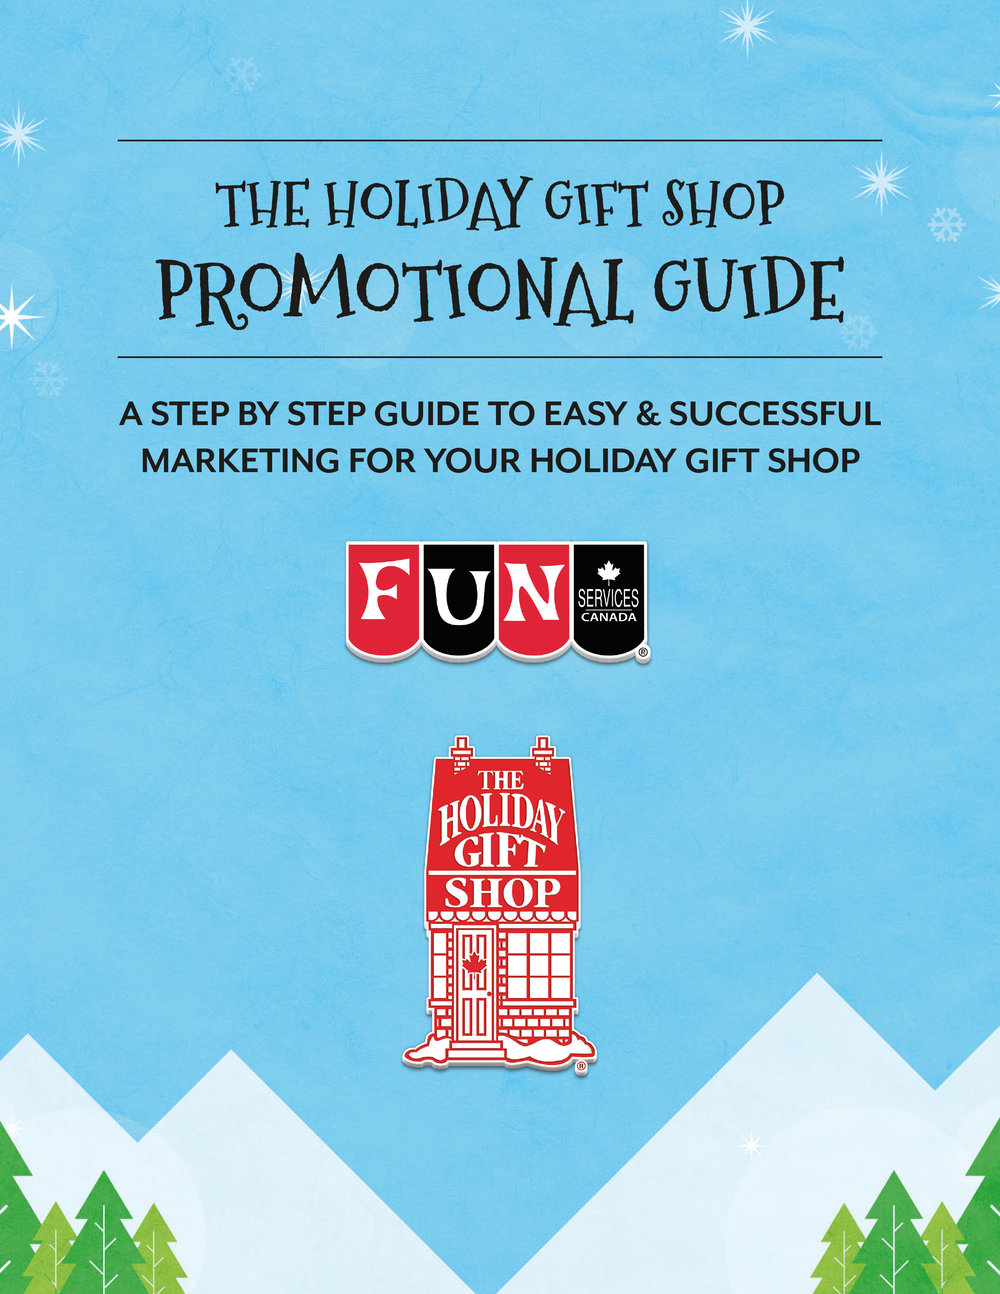 Holiday-Gift-Shop-Promotion-Guide-2018.jpg